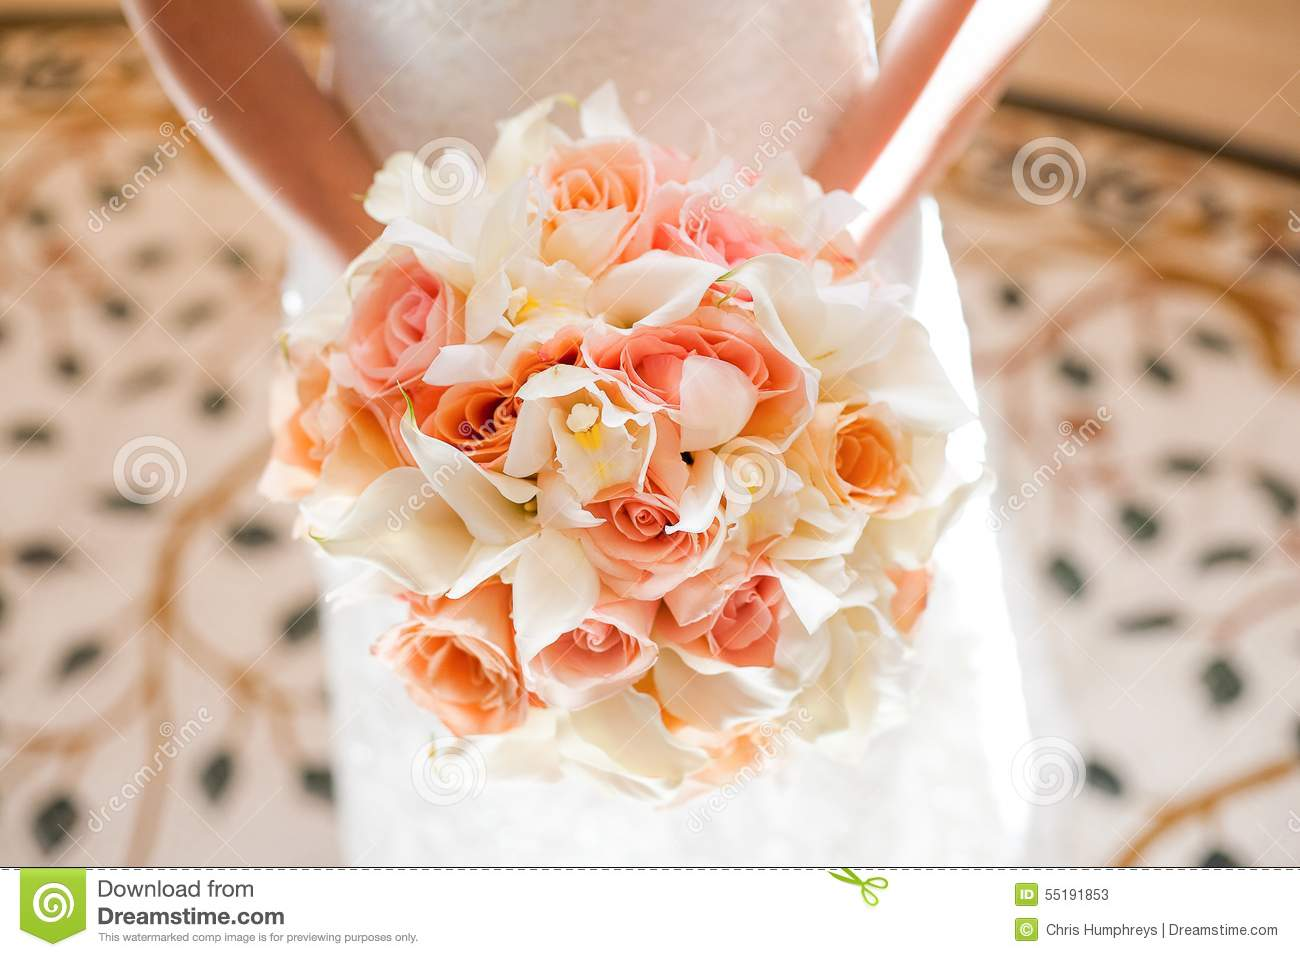 Bride With Beautiful Orange And Pink Wedding Bouquet Of Flowers